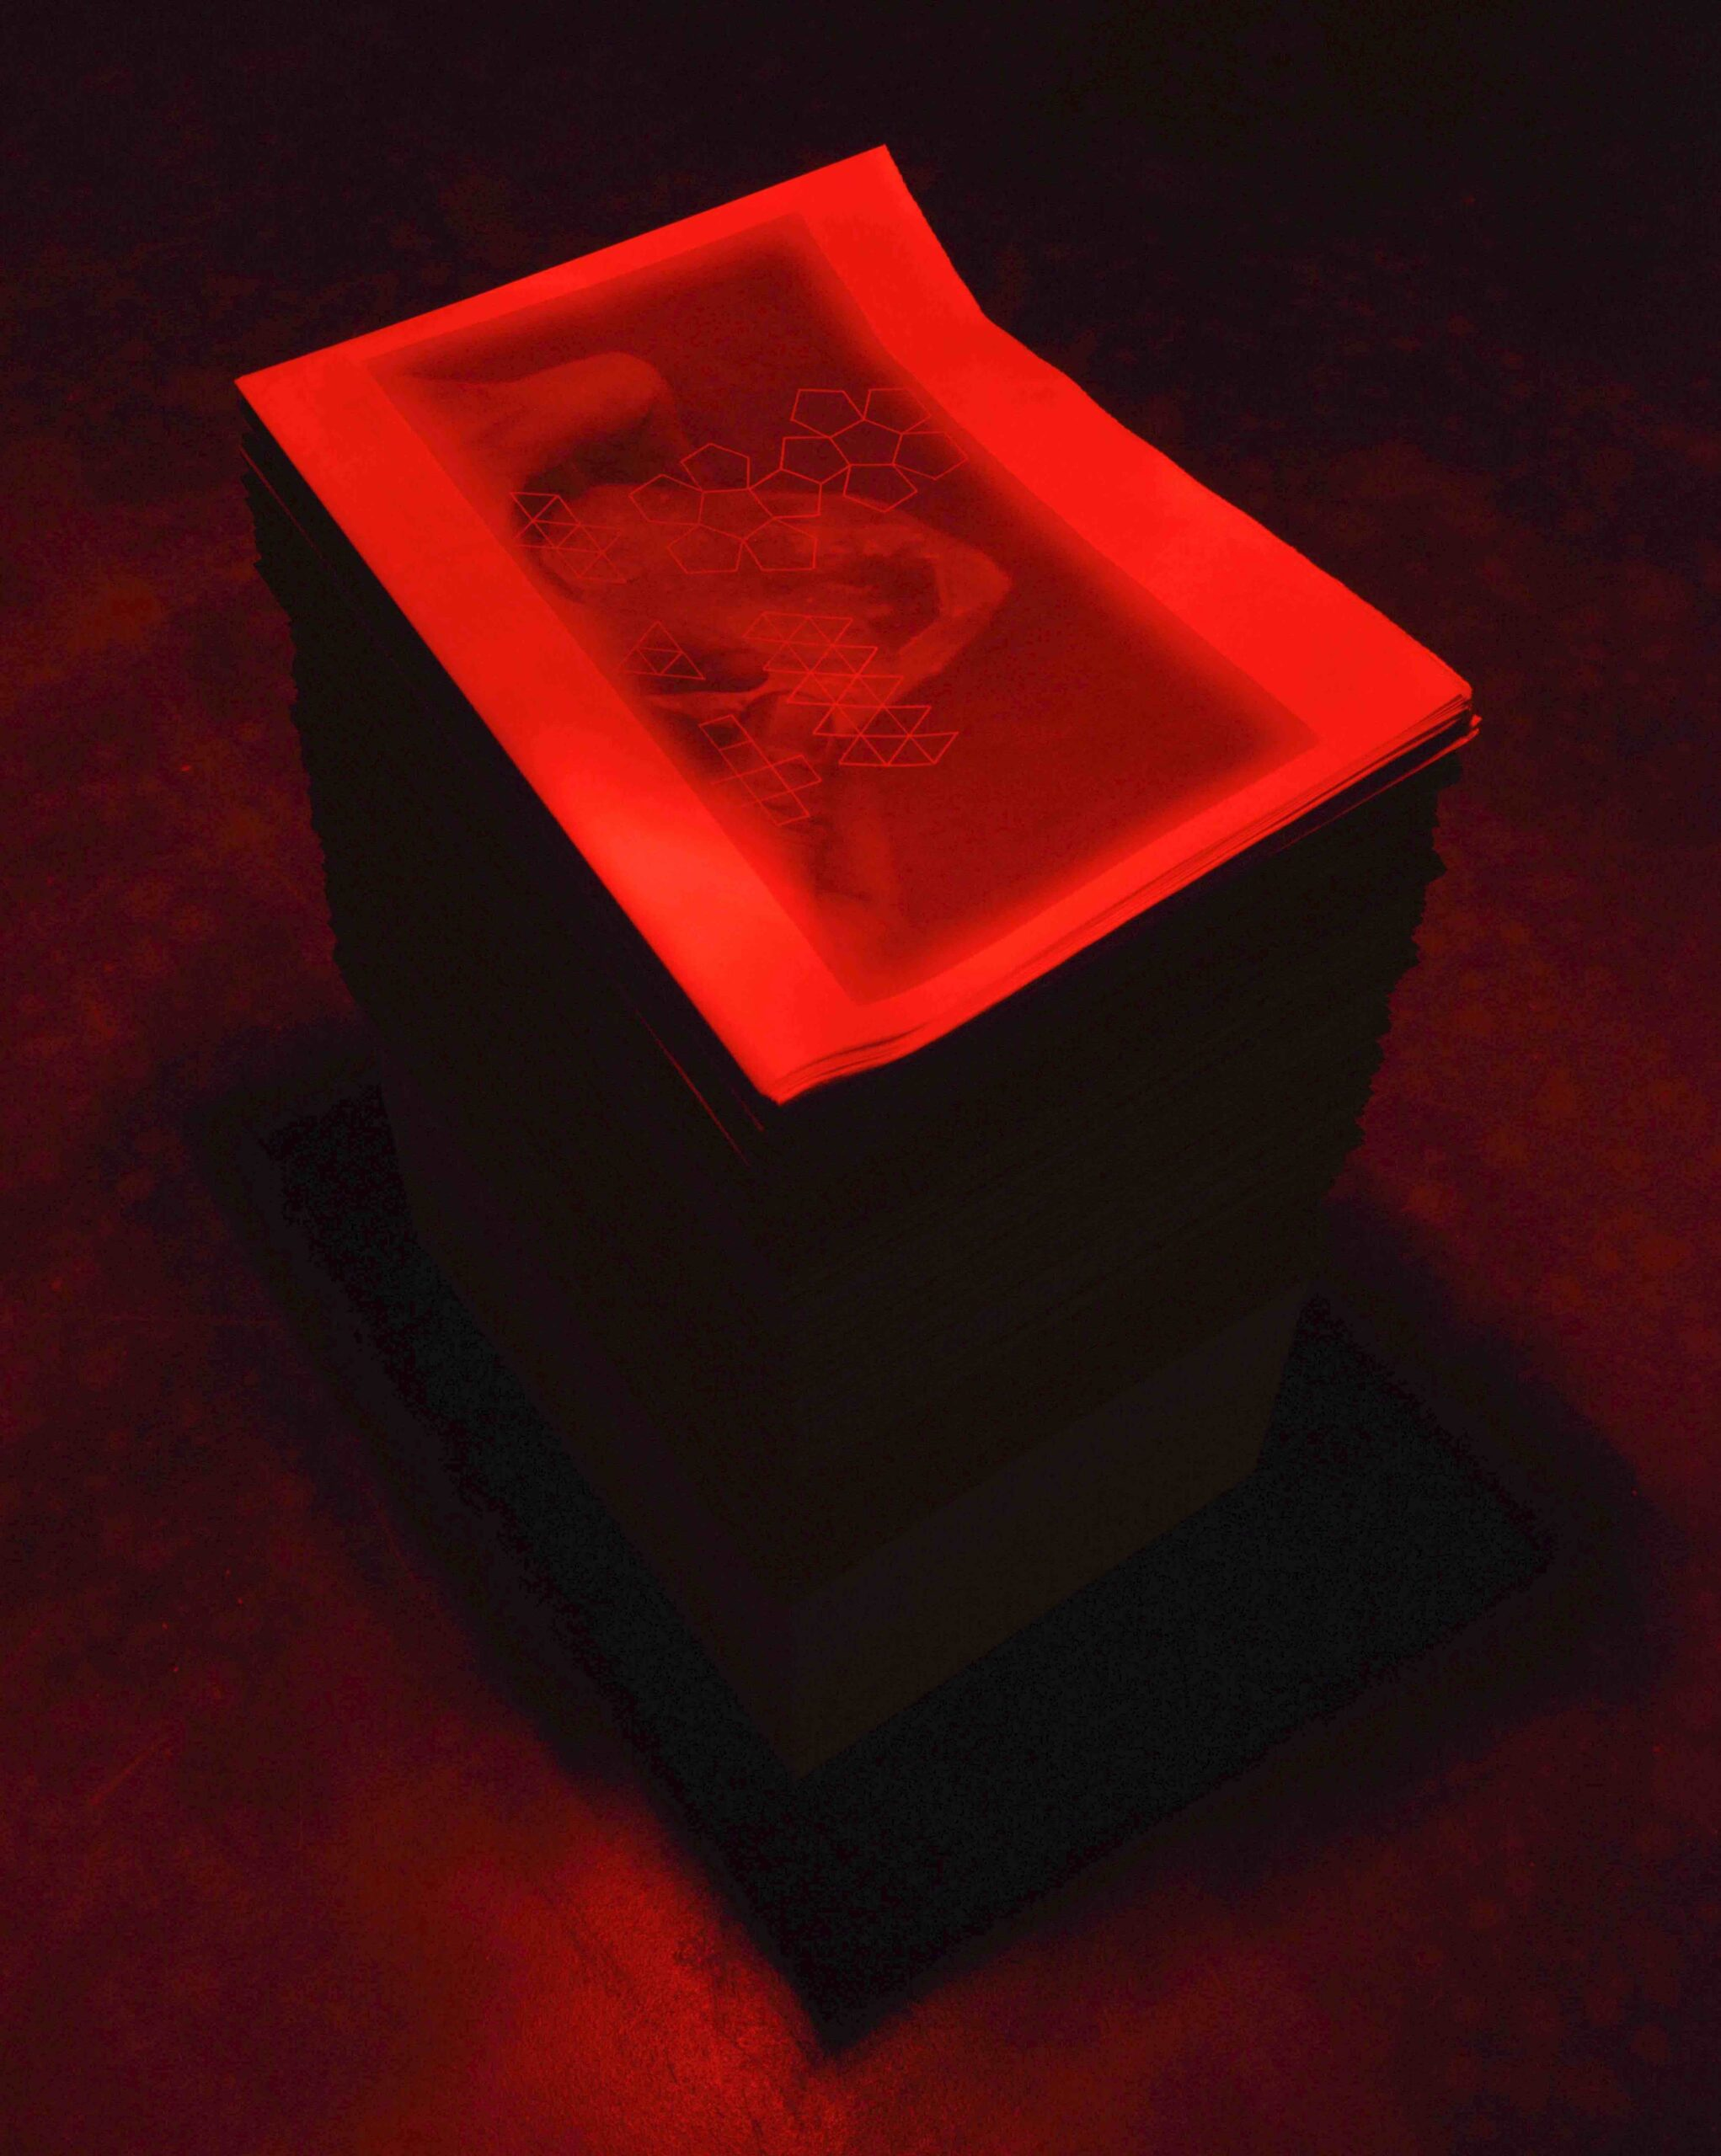 An image of a stack of Soot Breath Corpus Infinitum A3 publications about 1m in height, under a red light